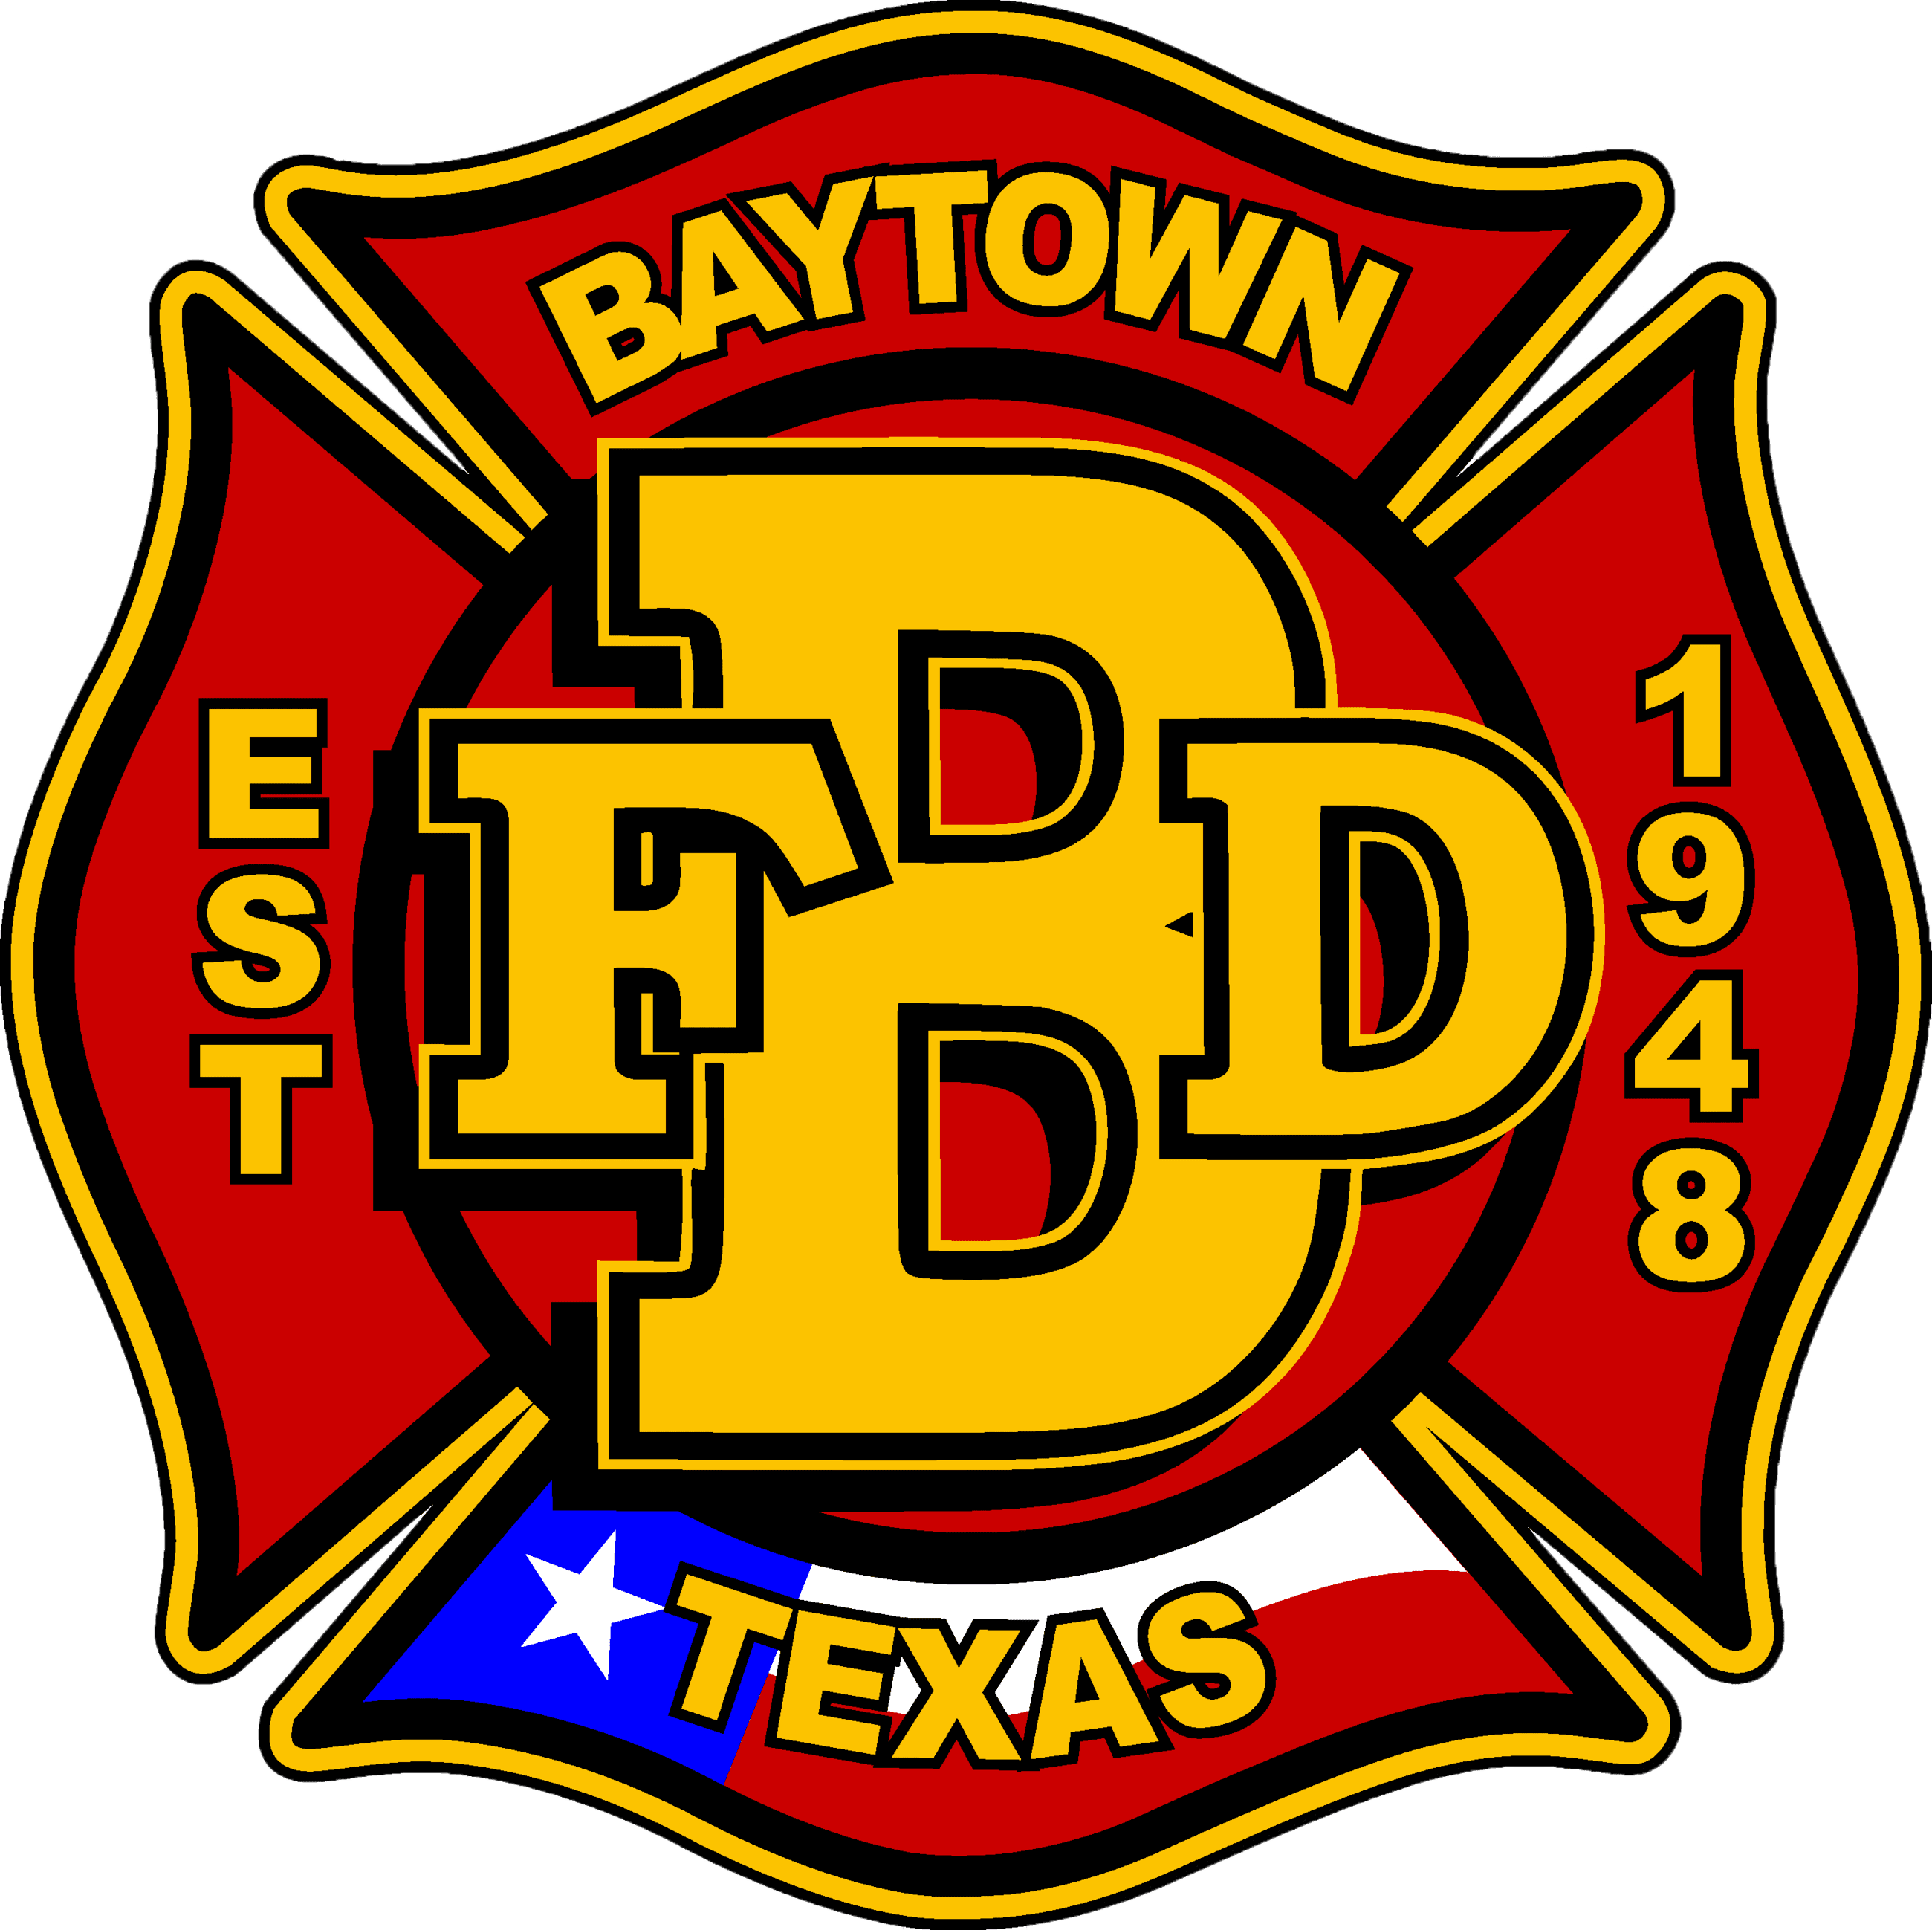 Baytown Fire Department Badge